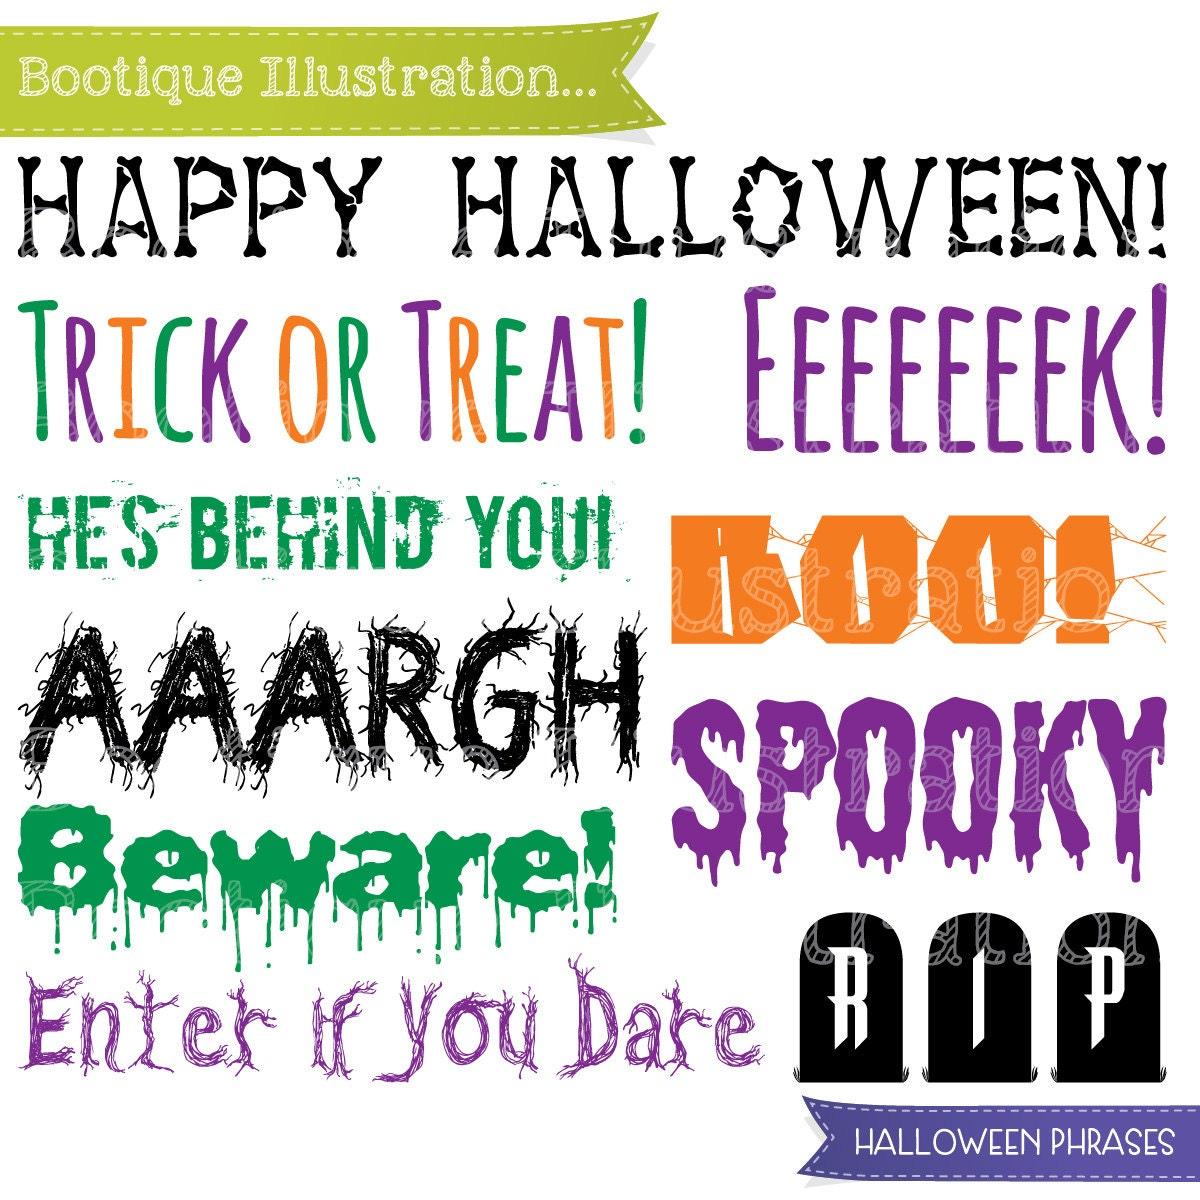 Halloween Phrases Clipart, Halloween Clip Art. Boo! Trick Or Treat! Happy  Halloween Clipart. Spooky Vectors. Halloween Digital. Beware!